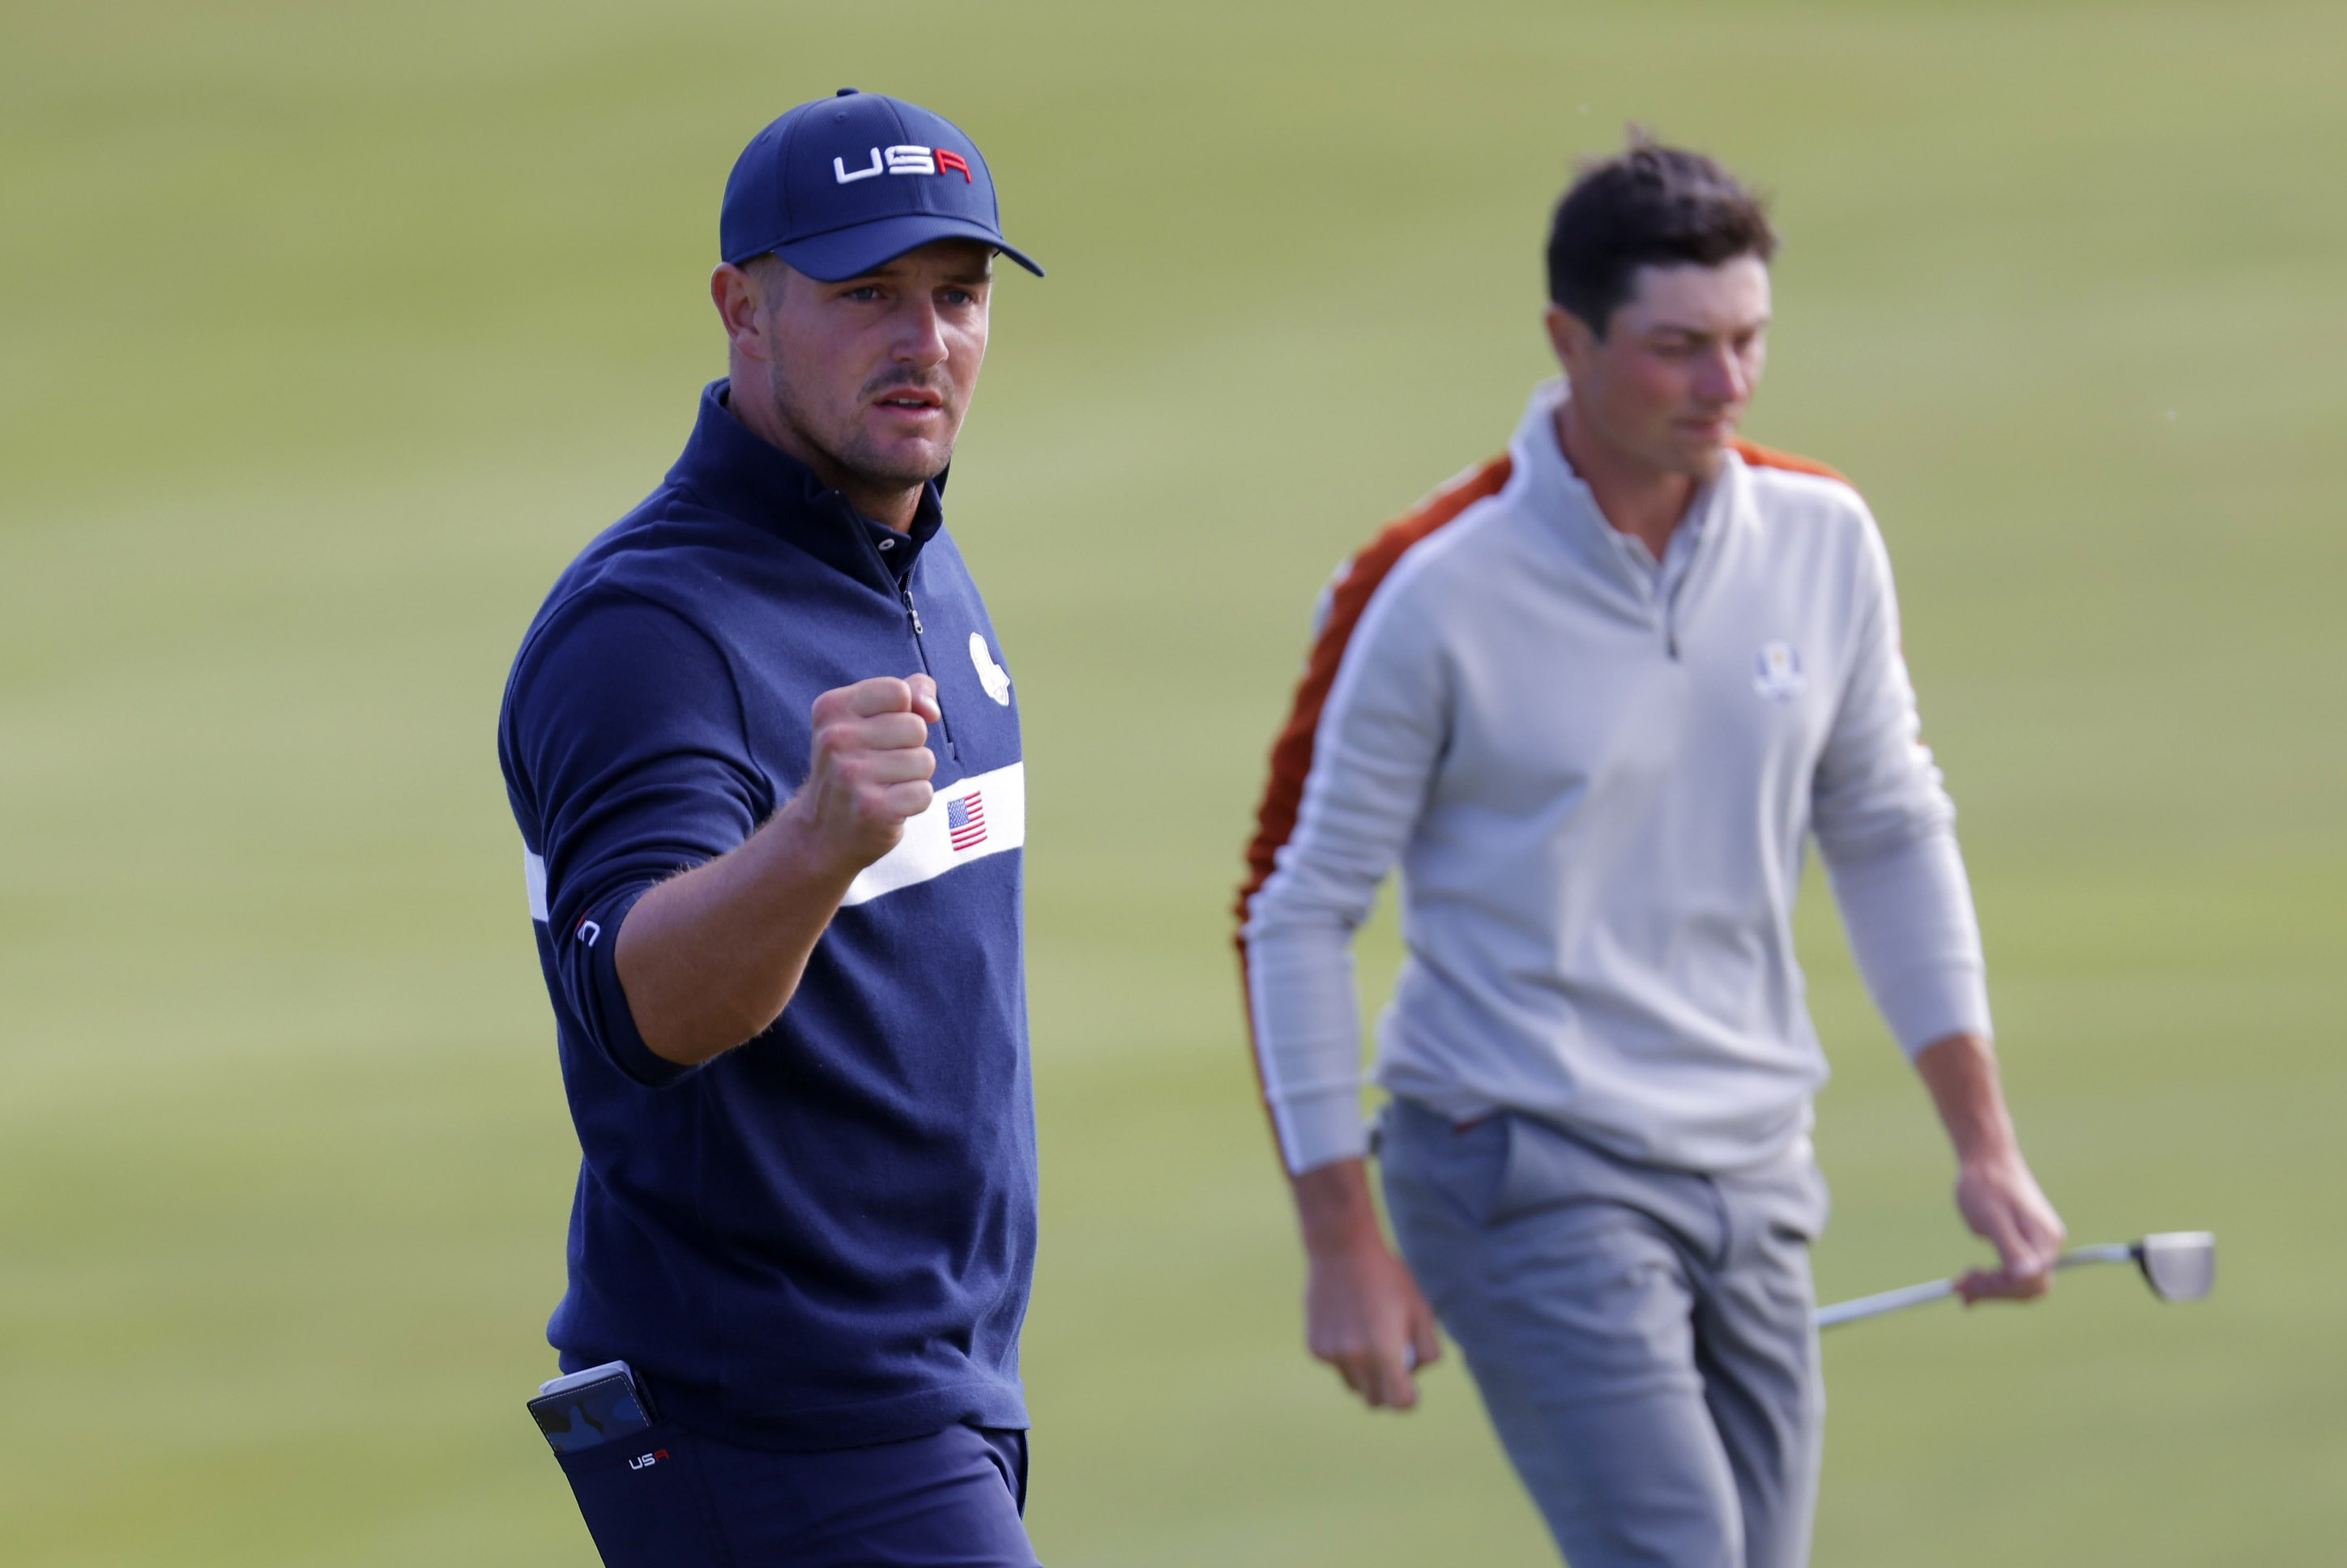 Golf - The 2020 Ryder Cup - Whistling Straits, Sheboygan, Wisconsin, U.S. - September 25, 2021 Team USA's Bryson DeChambeau reacts after holing his putt on the 10th green as Team Europe's Viktor Hovland looks on during the Four-balls REUTERS/Mike Segar